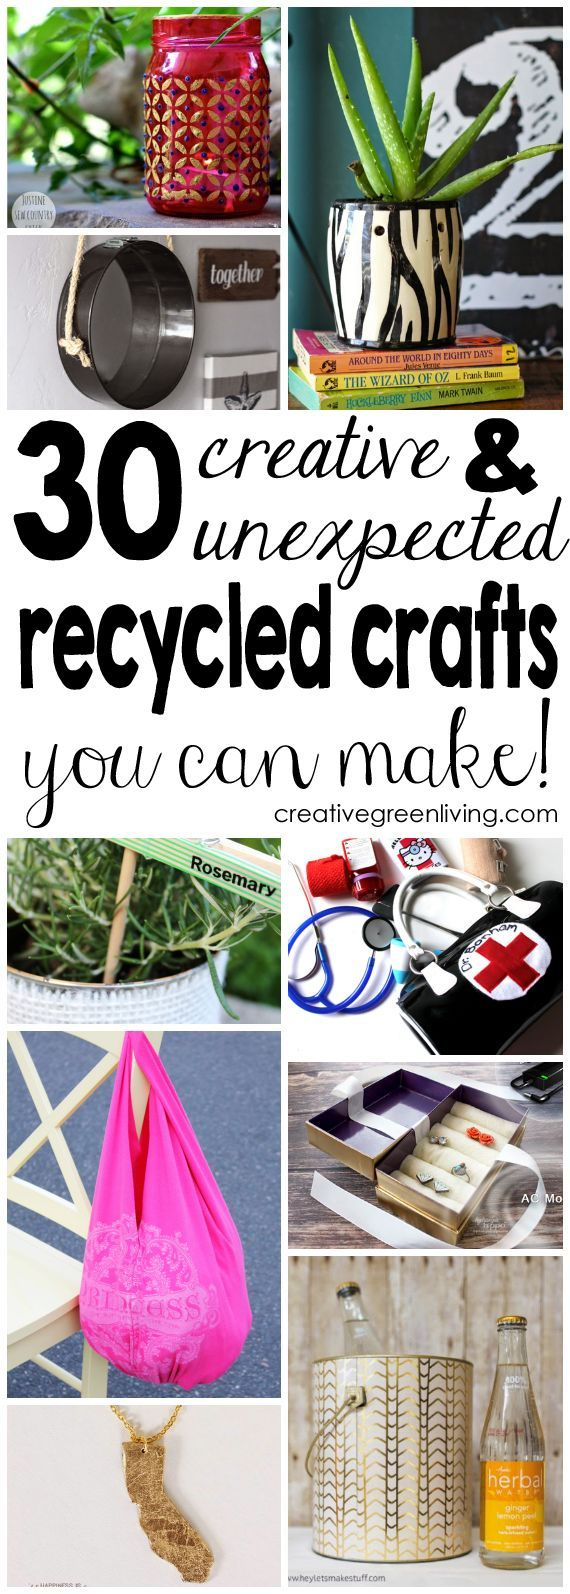 30 Creative Recycled Craft Ideas You Can Make Yourself! #recycledcrafts